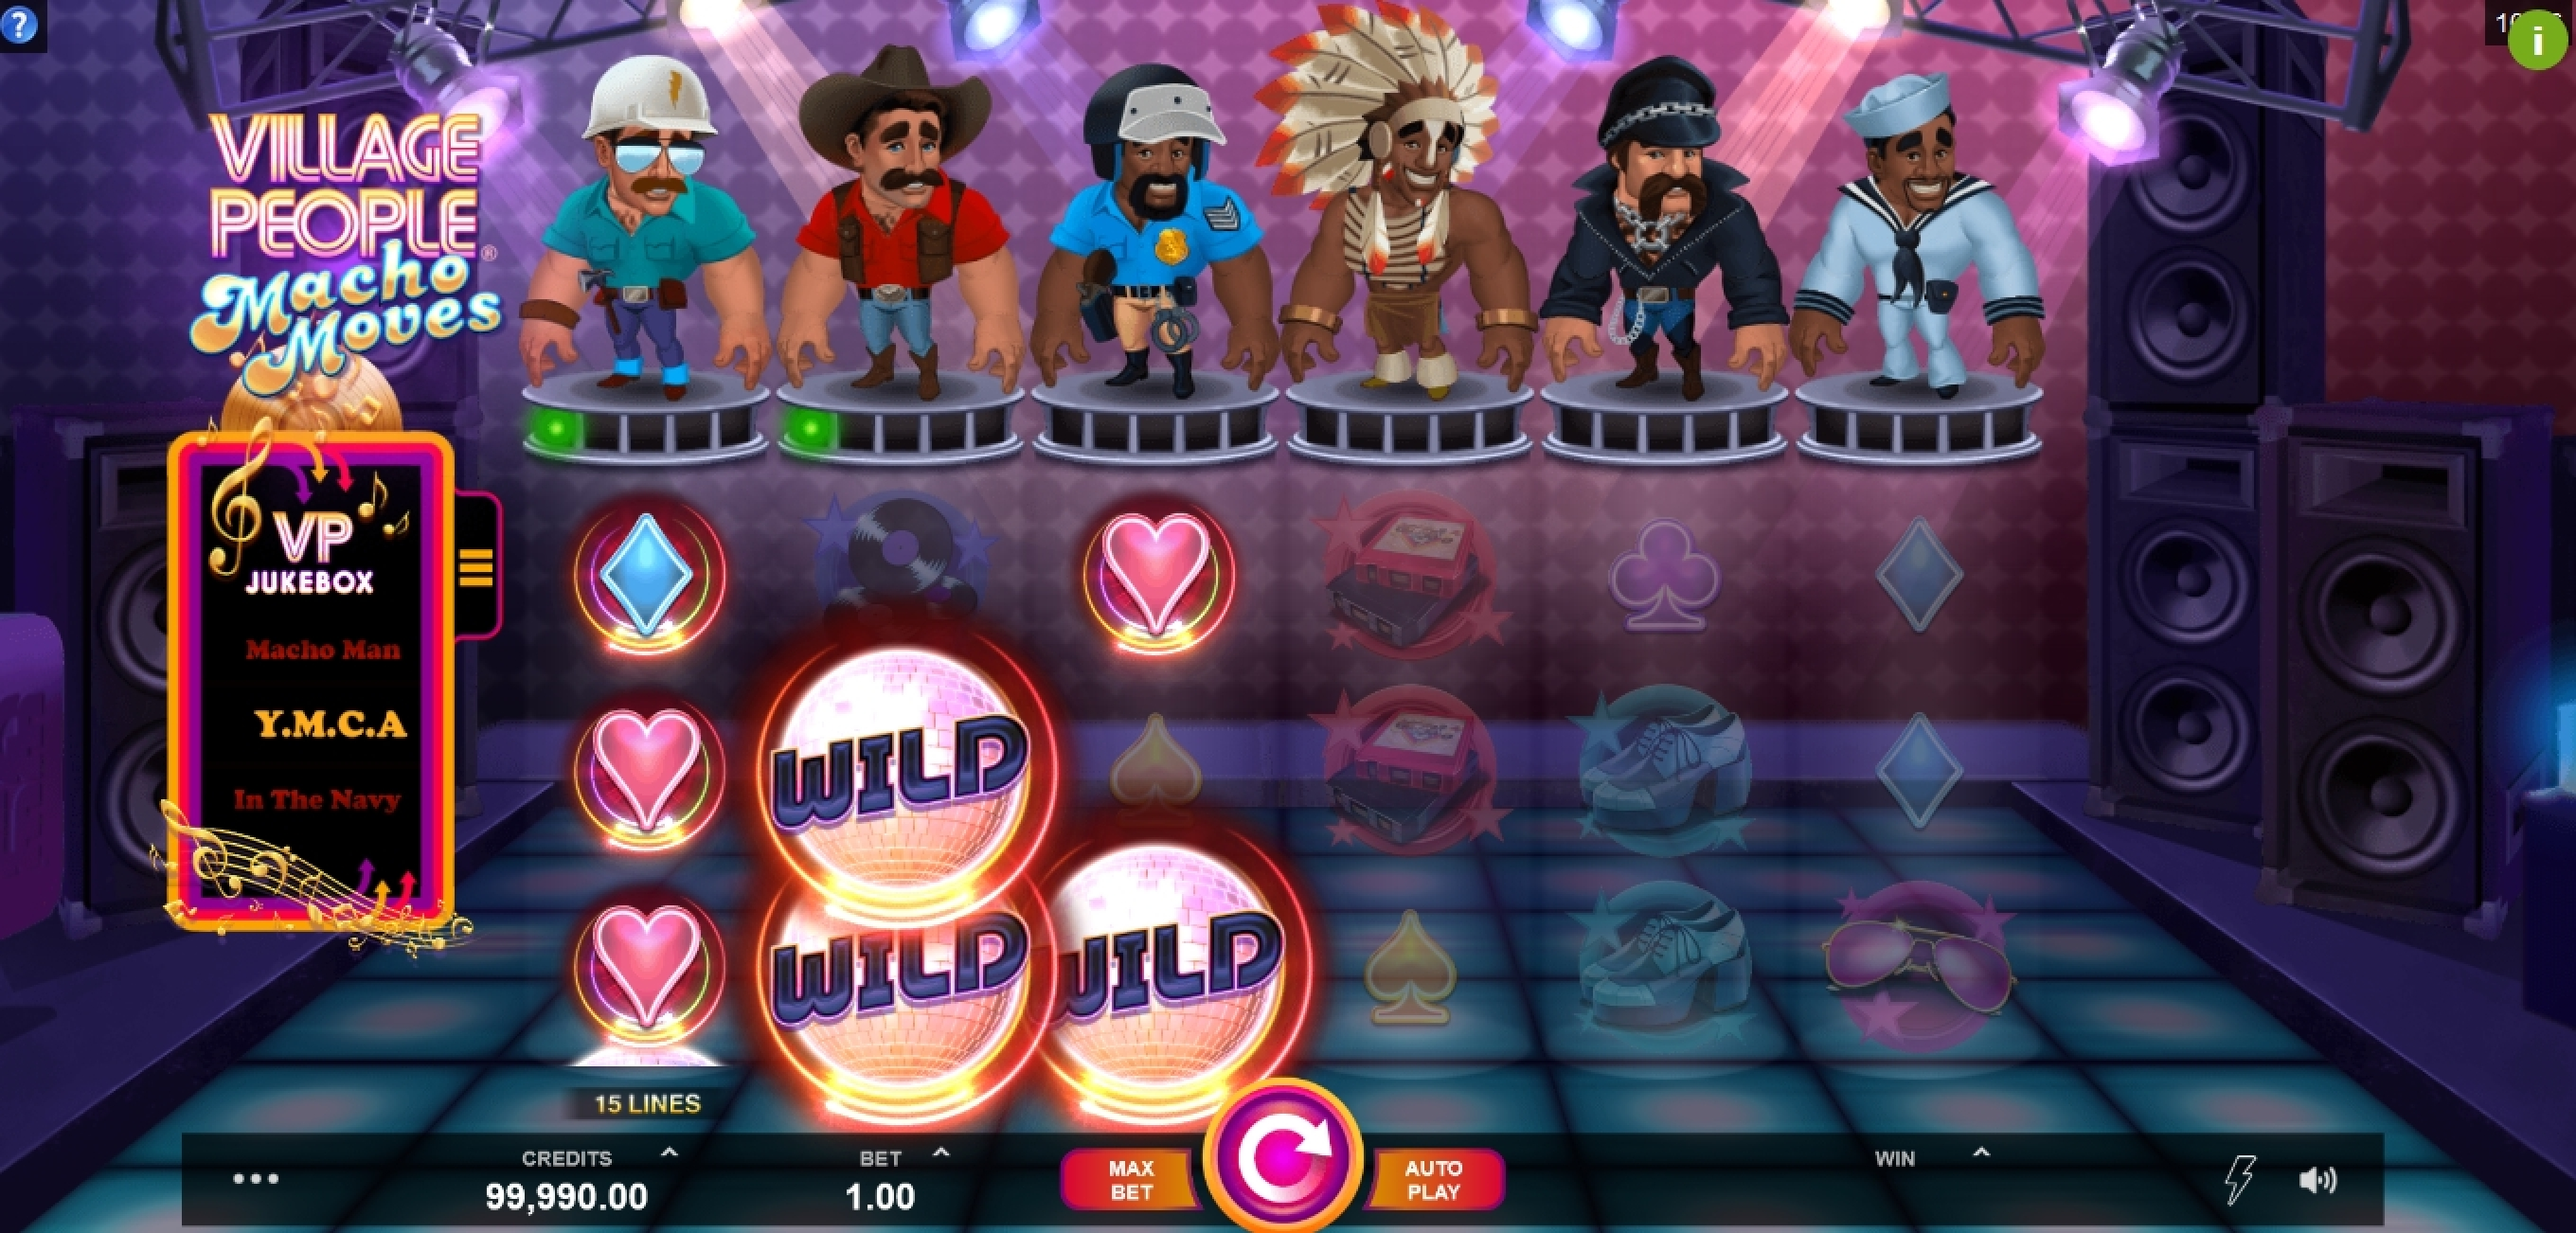 Win Money in Village People Macho Moves Free Slot Game by Fortune Factory Studios